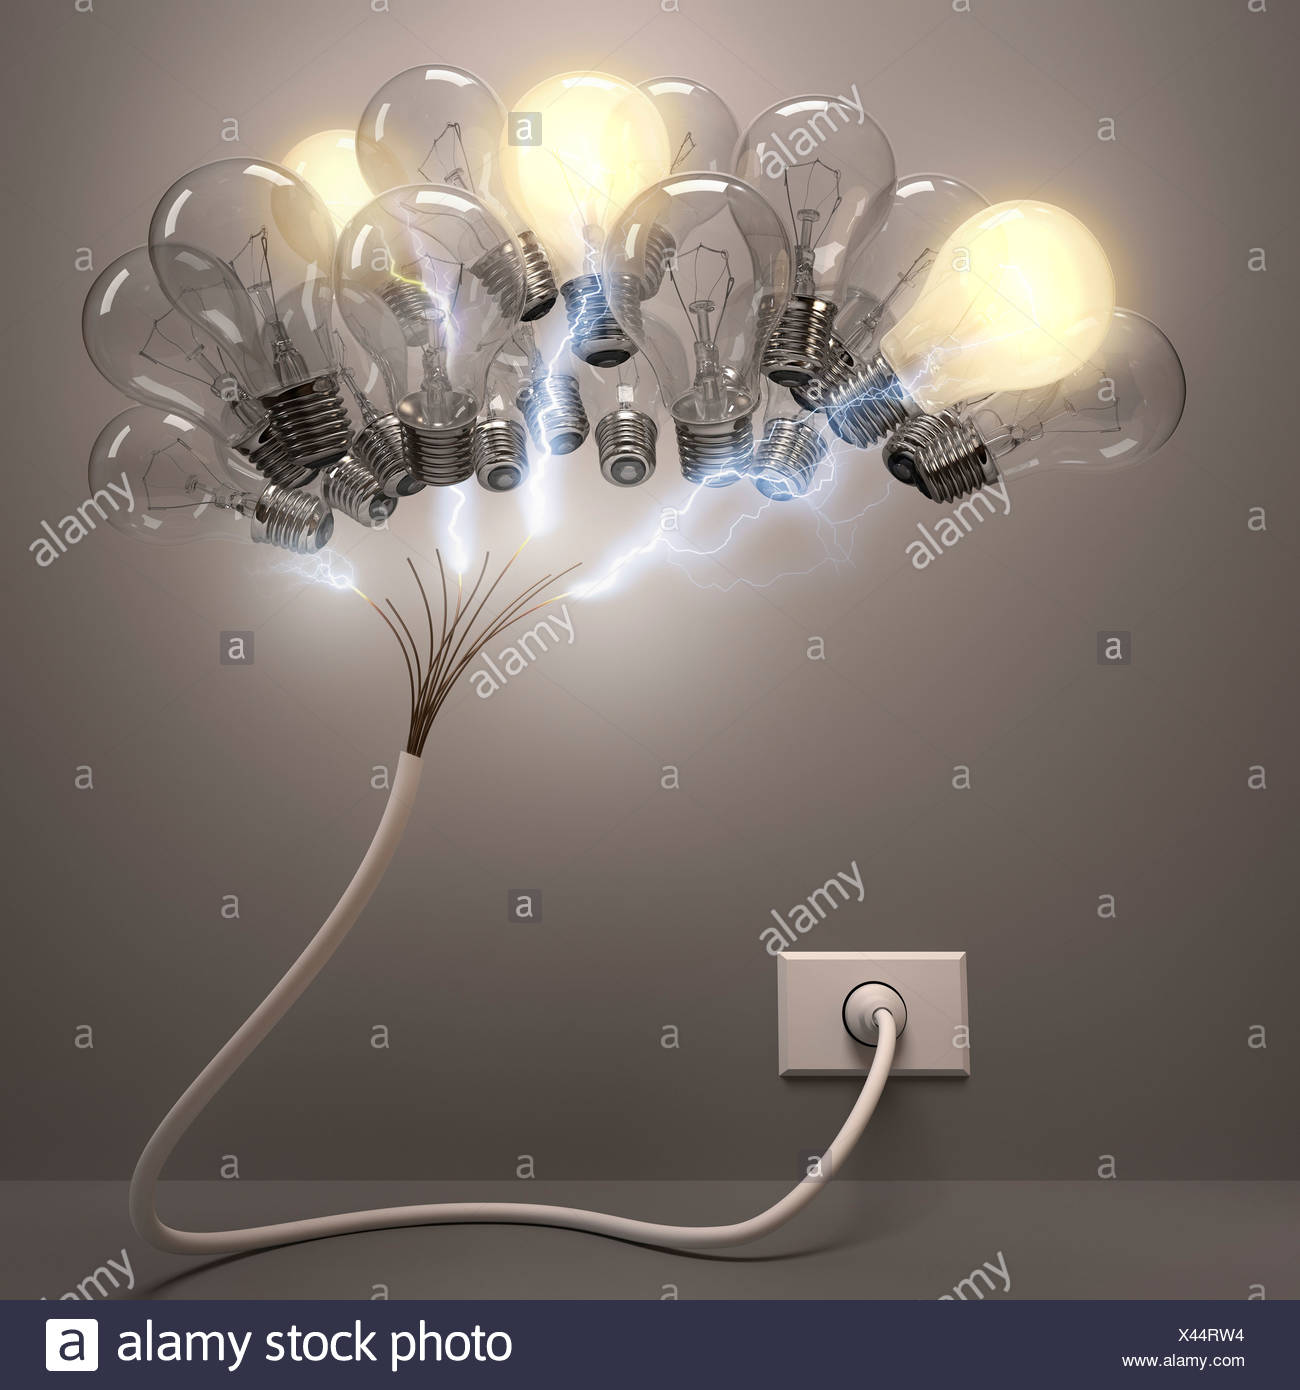 Creativity, conceptual artwork - Stock Image